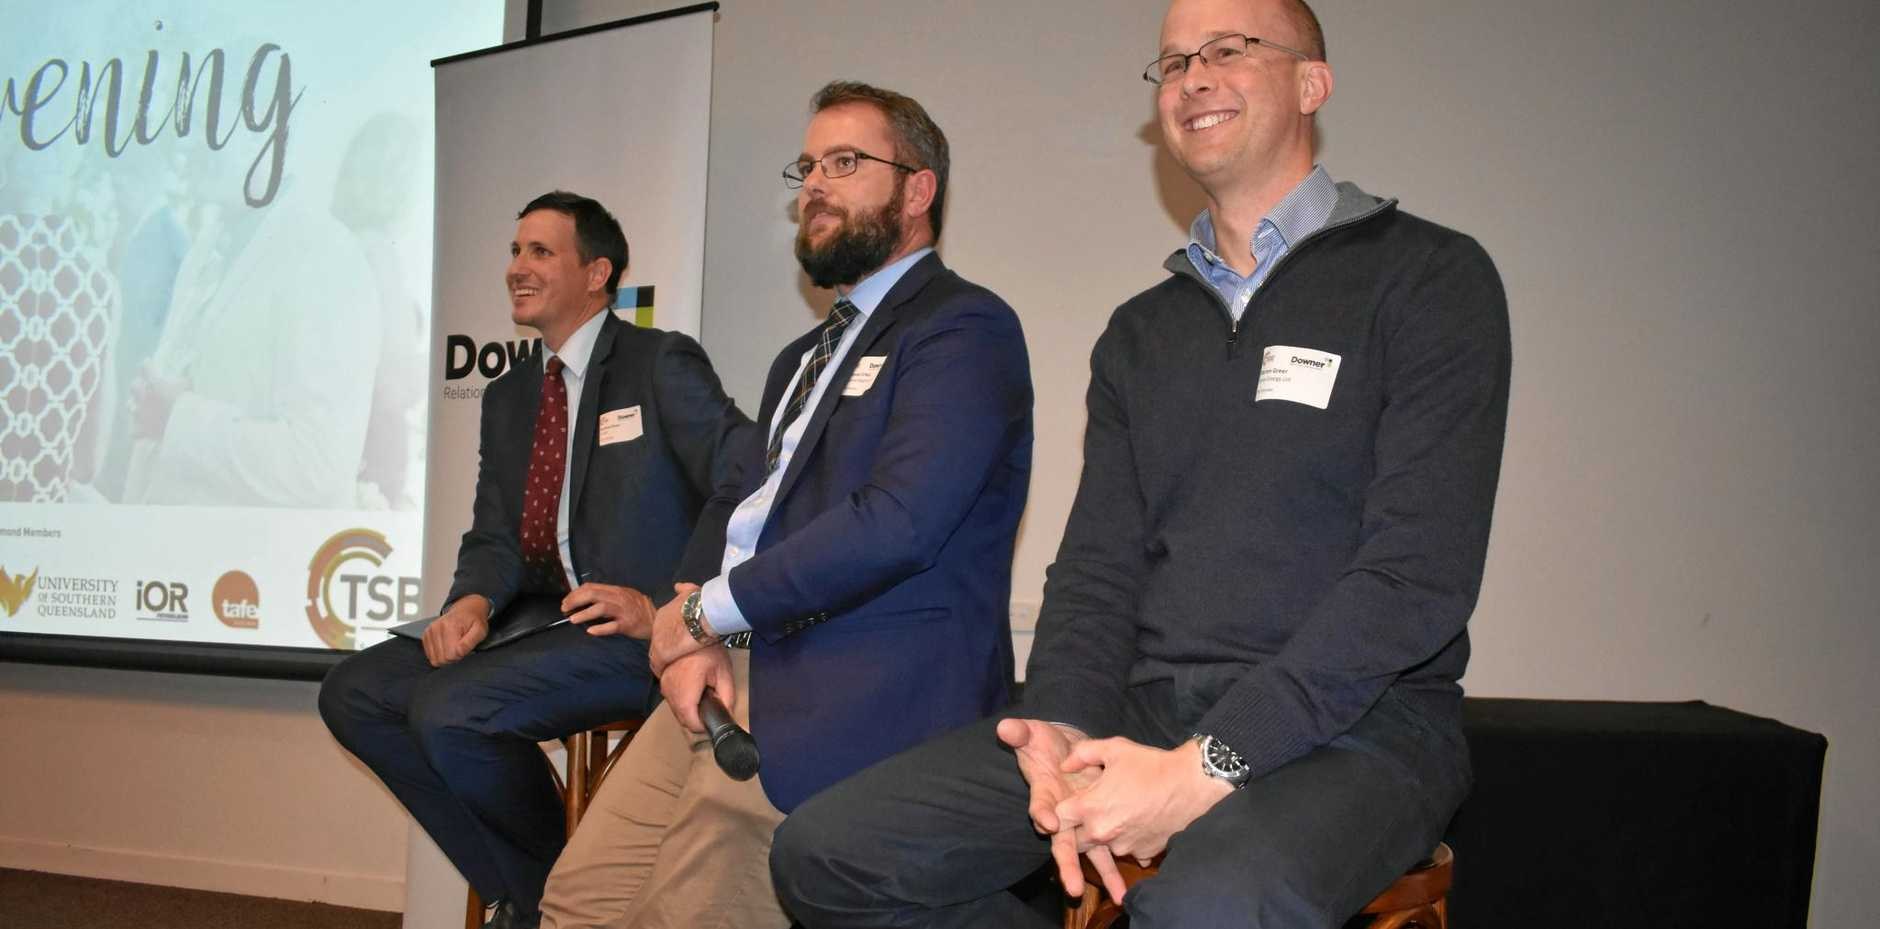 REGIONAL UPDATE: Santos regional manager Andrew Snars, Councillor Cameron O'Neil and Senex operations officer Darren Greer answer questions at the Roma Enterprise Evening on behalf of the Surat basin Enterprise (TSBE).